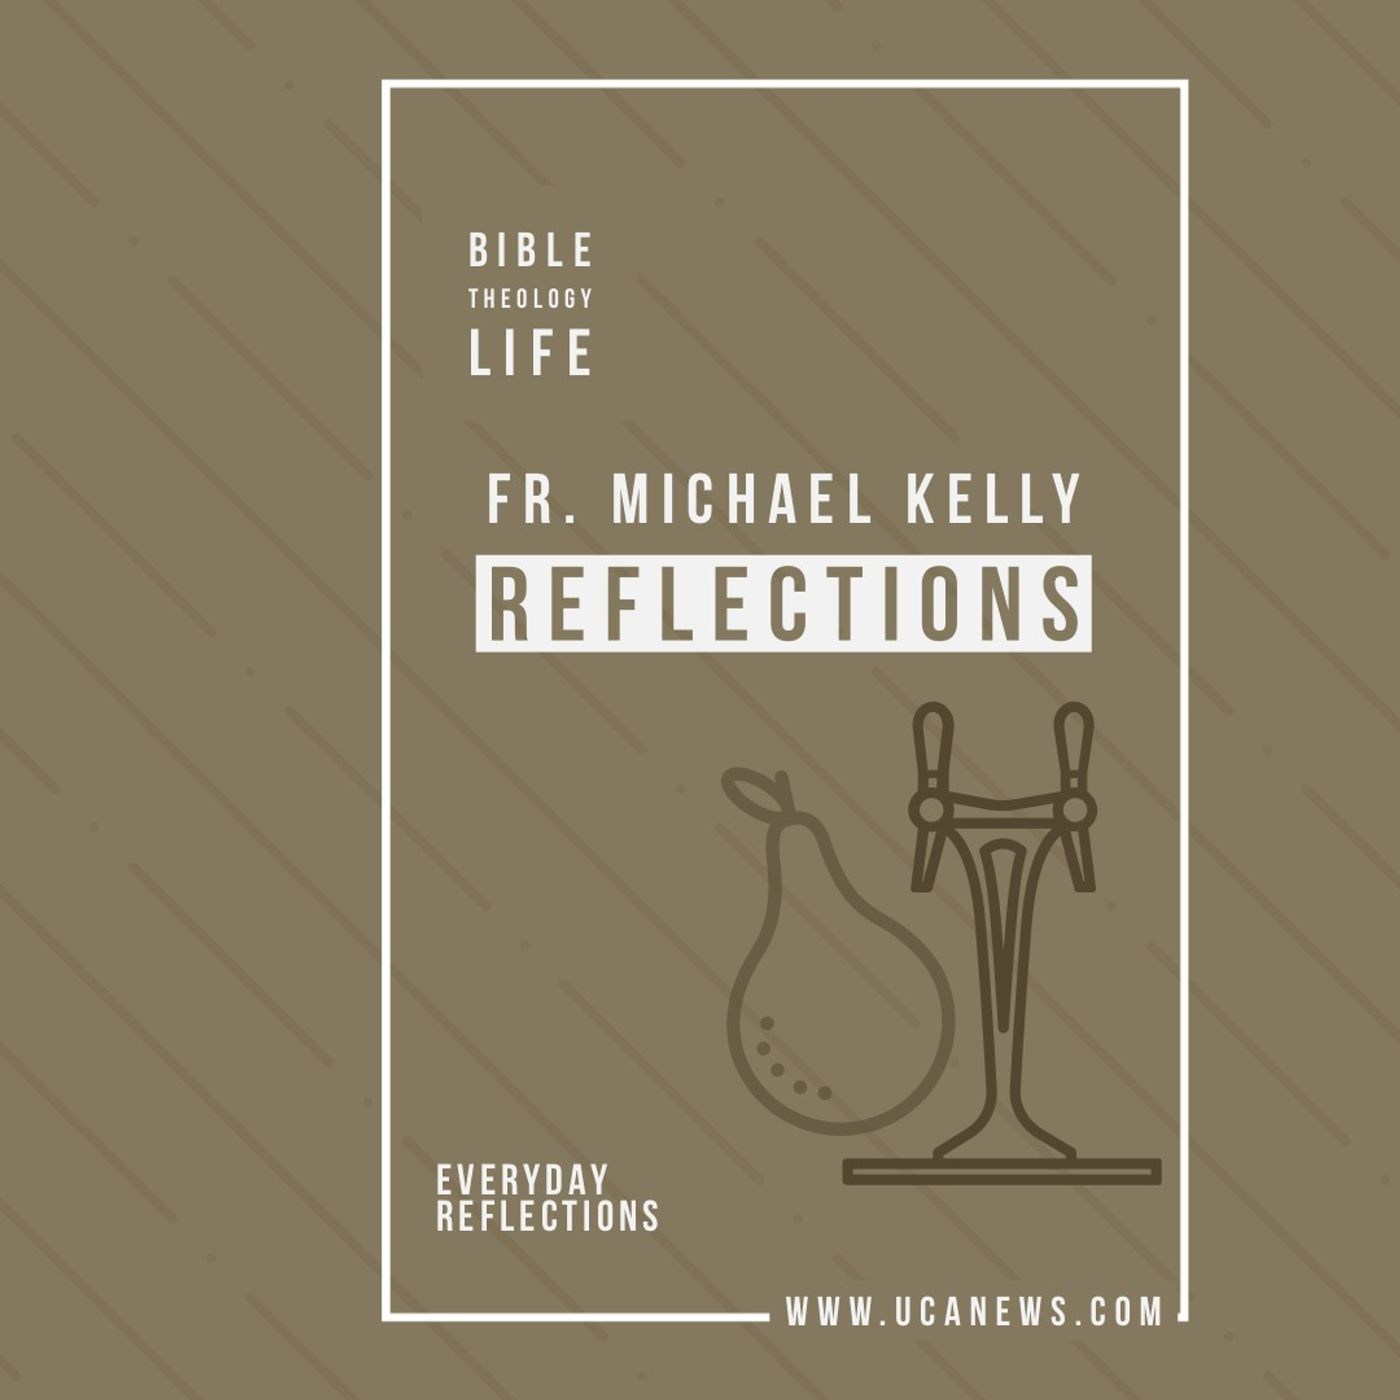 Reflections with Fr. Michael Kelly - Tuesday 26 Oct, 2021